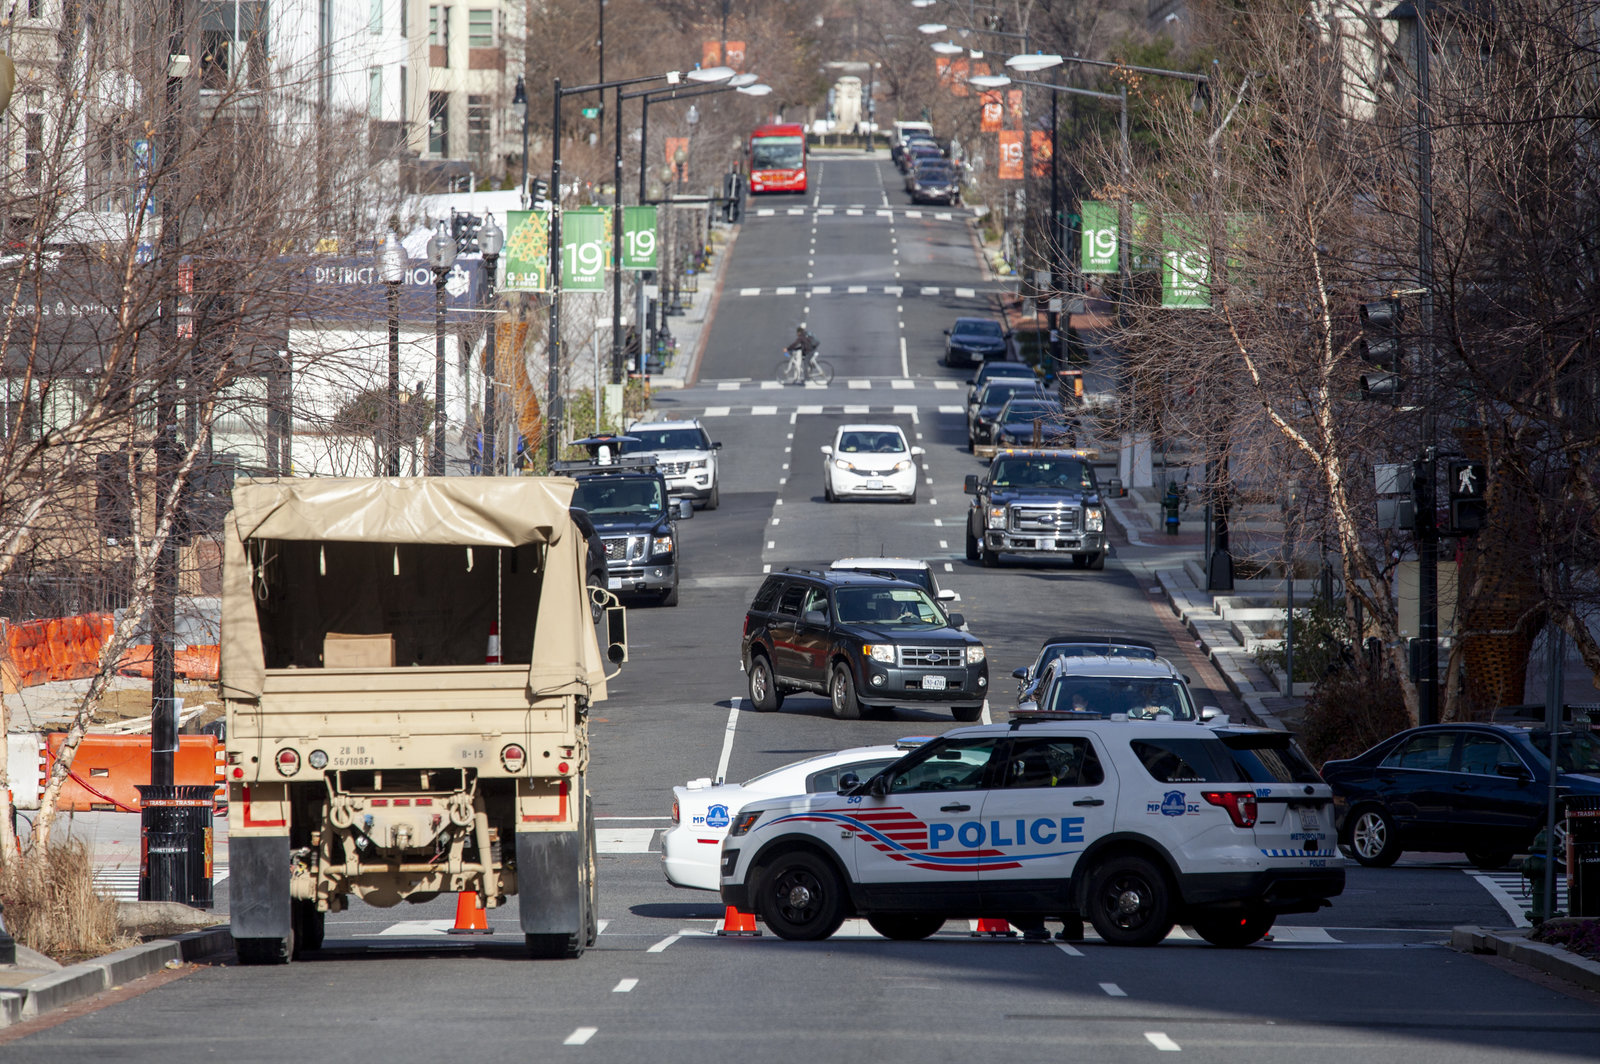 Military and police vehicles block off street traffic in D.C.